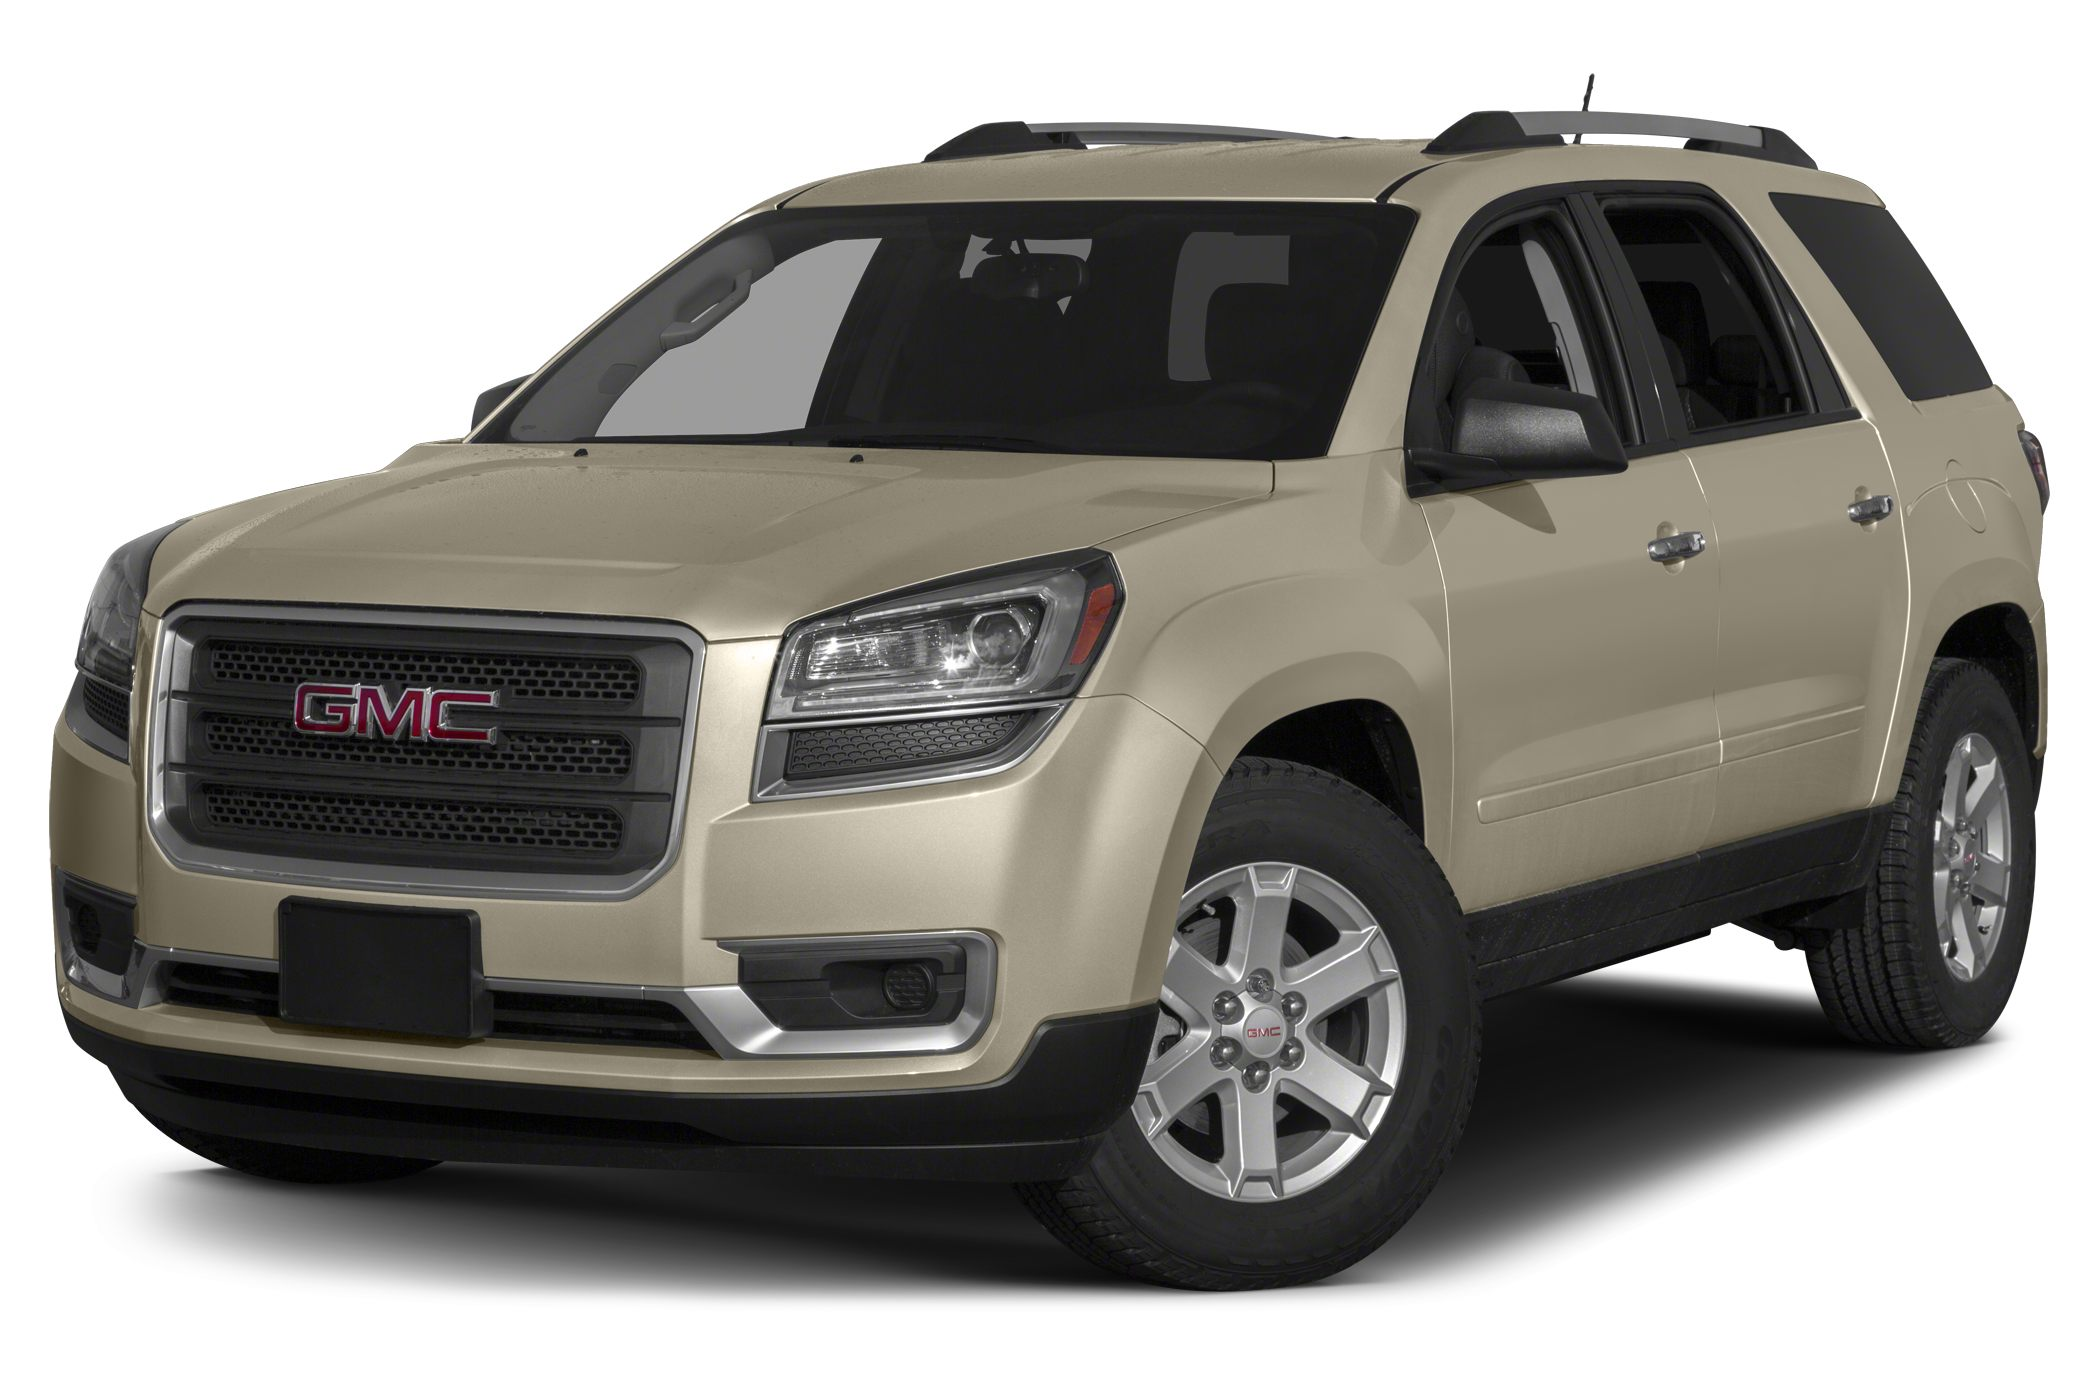 2015 GMC Acadia SLE-2 SUV for sale in Morgantown for $42,215 with 0 miles.